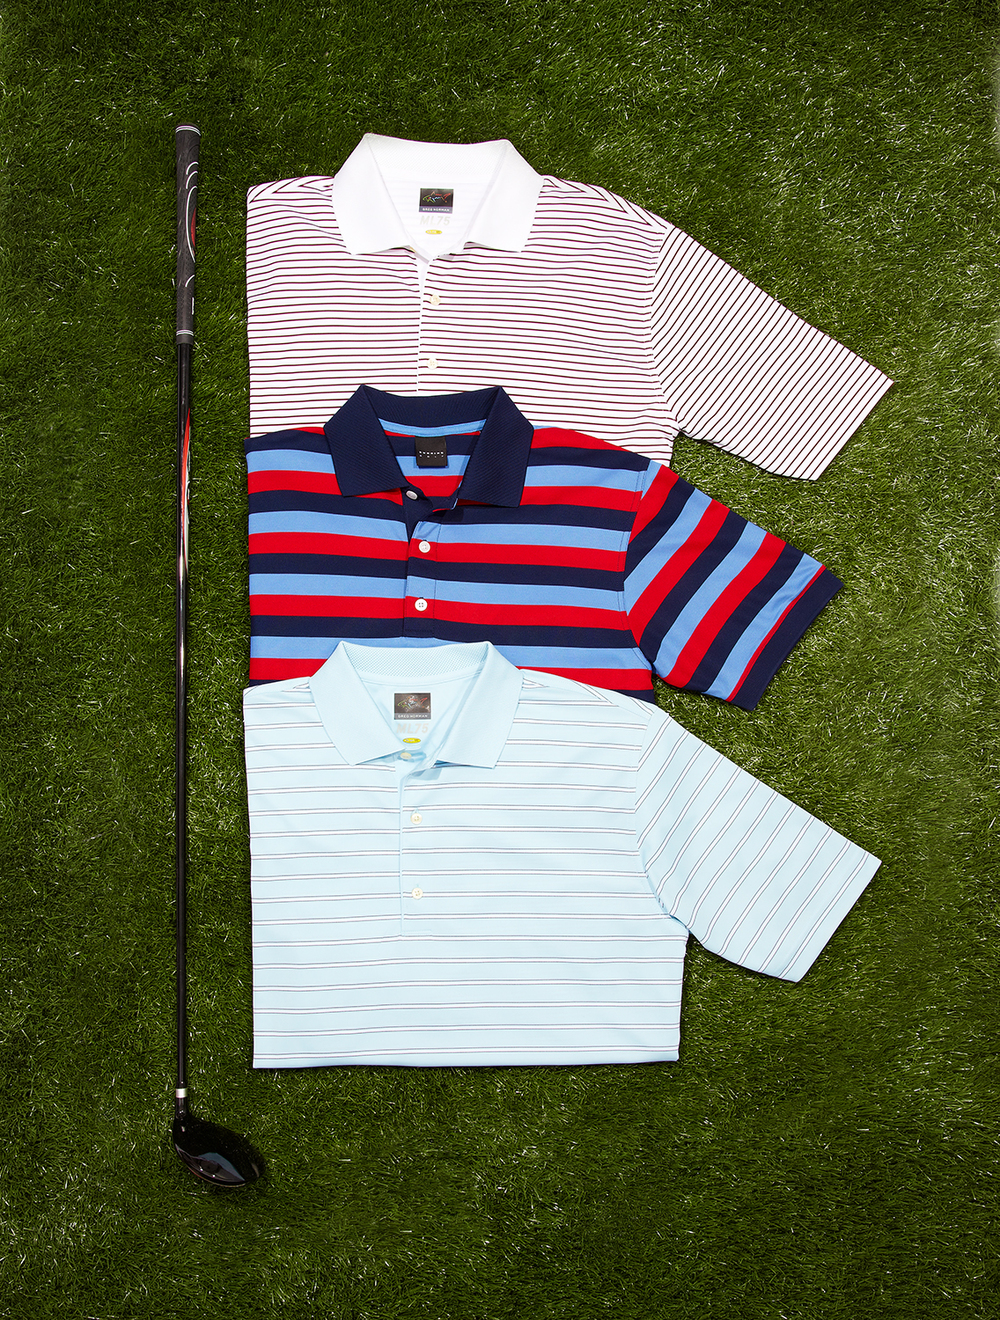 050414_EDITORIAL_STILLS_OFF5TH_GOLF_POLOS_A.jpg